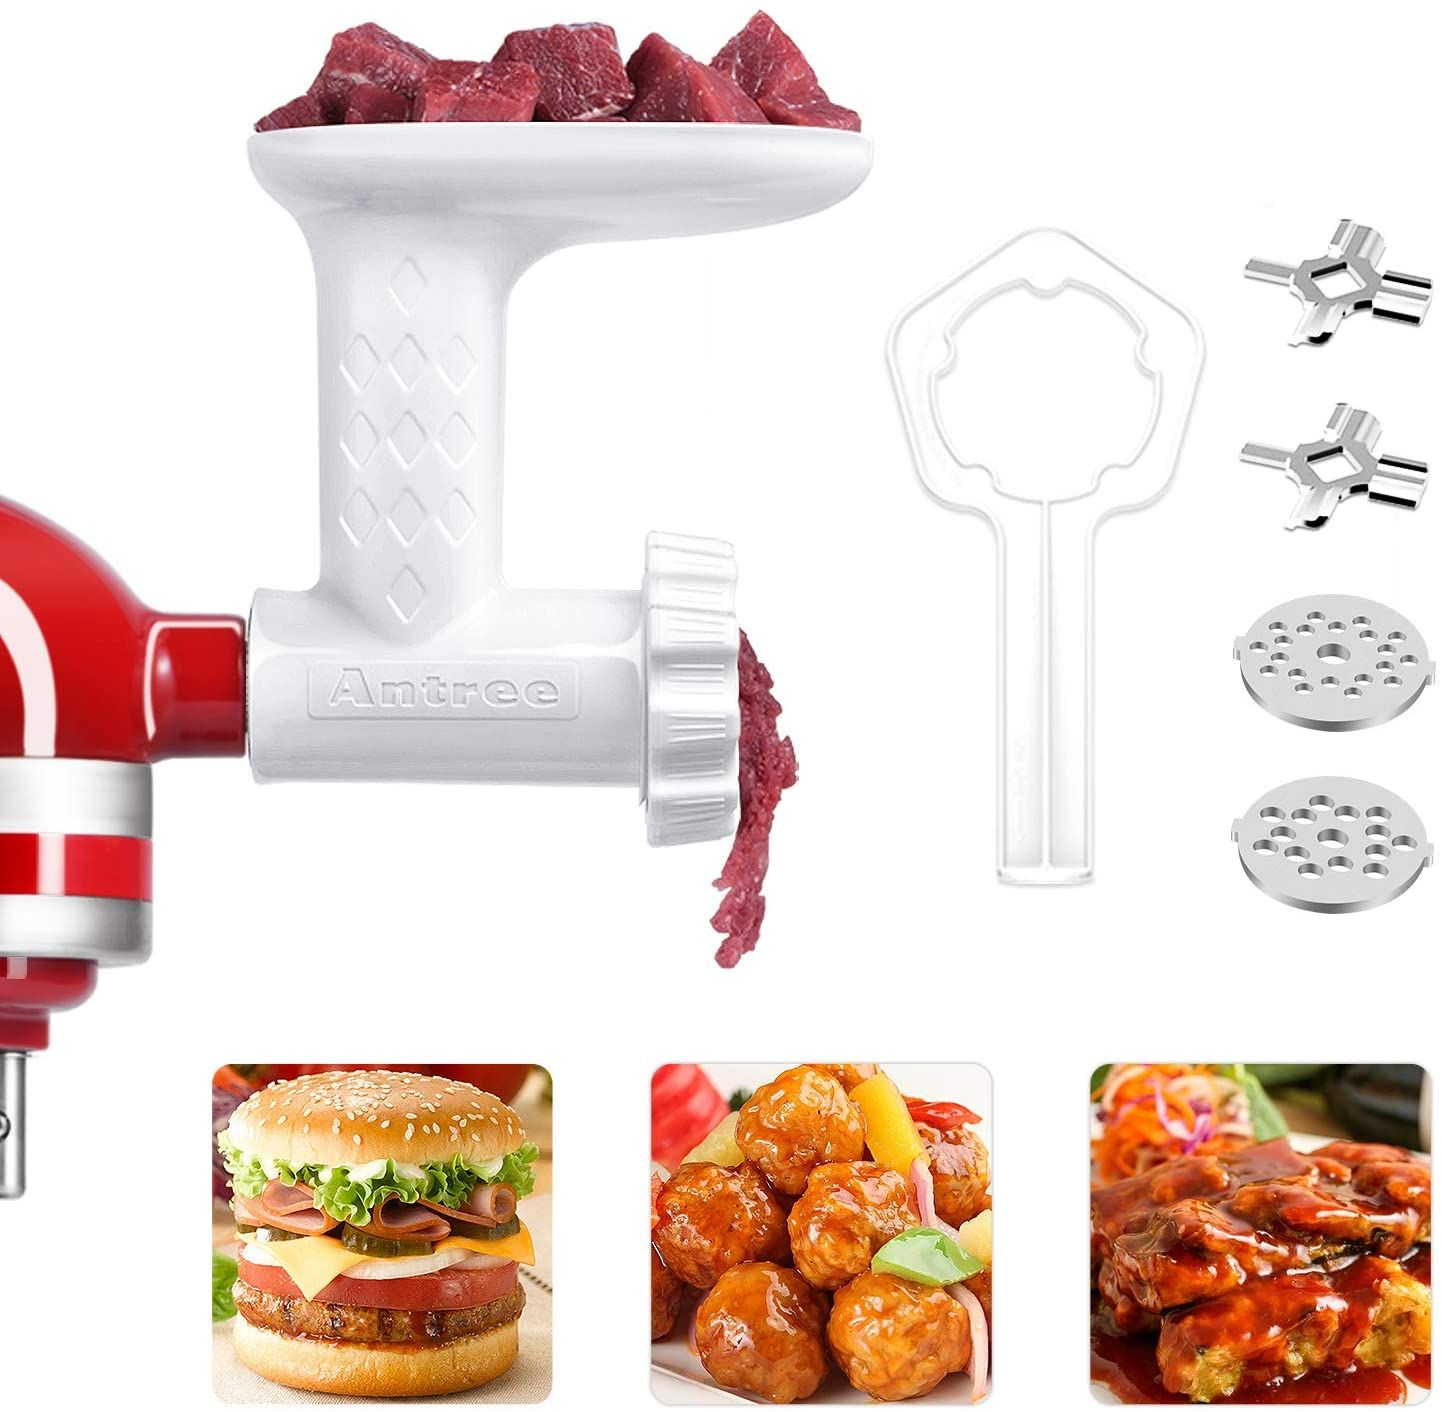 Antree food grinder attachment for kitchenaid stand mixers